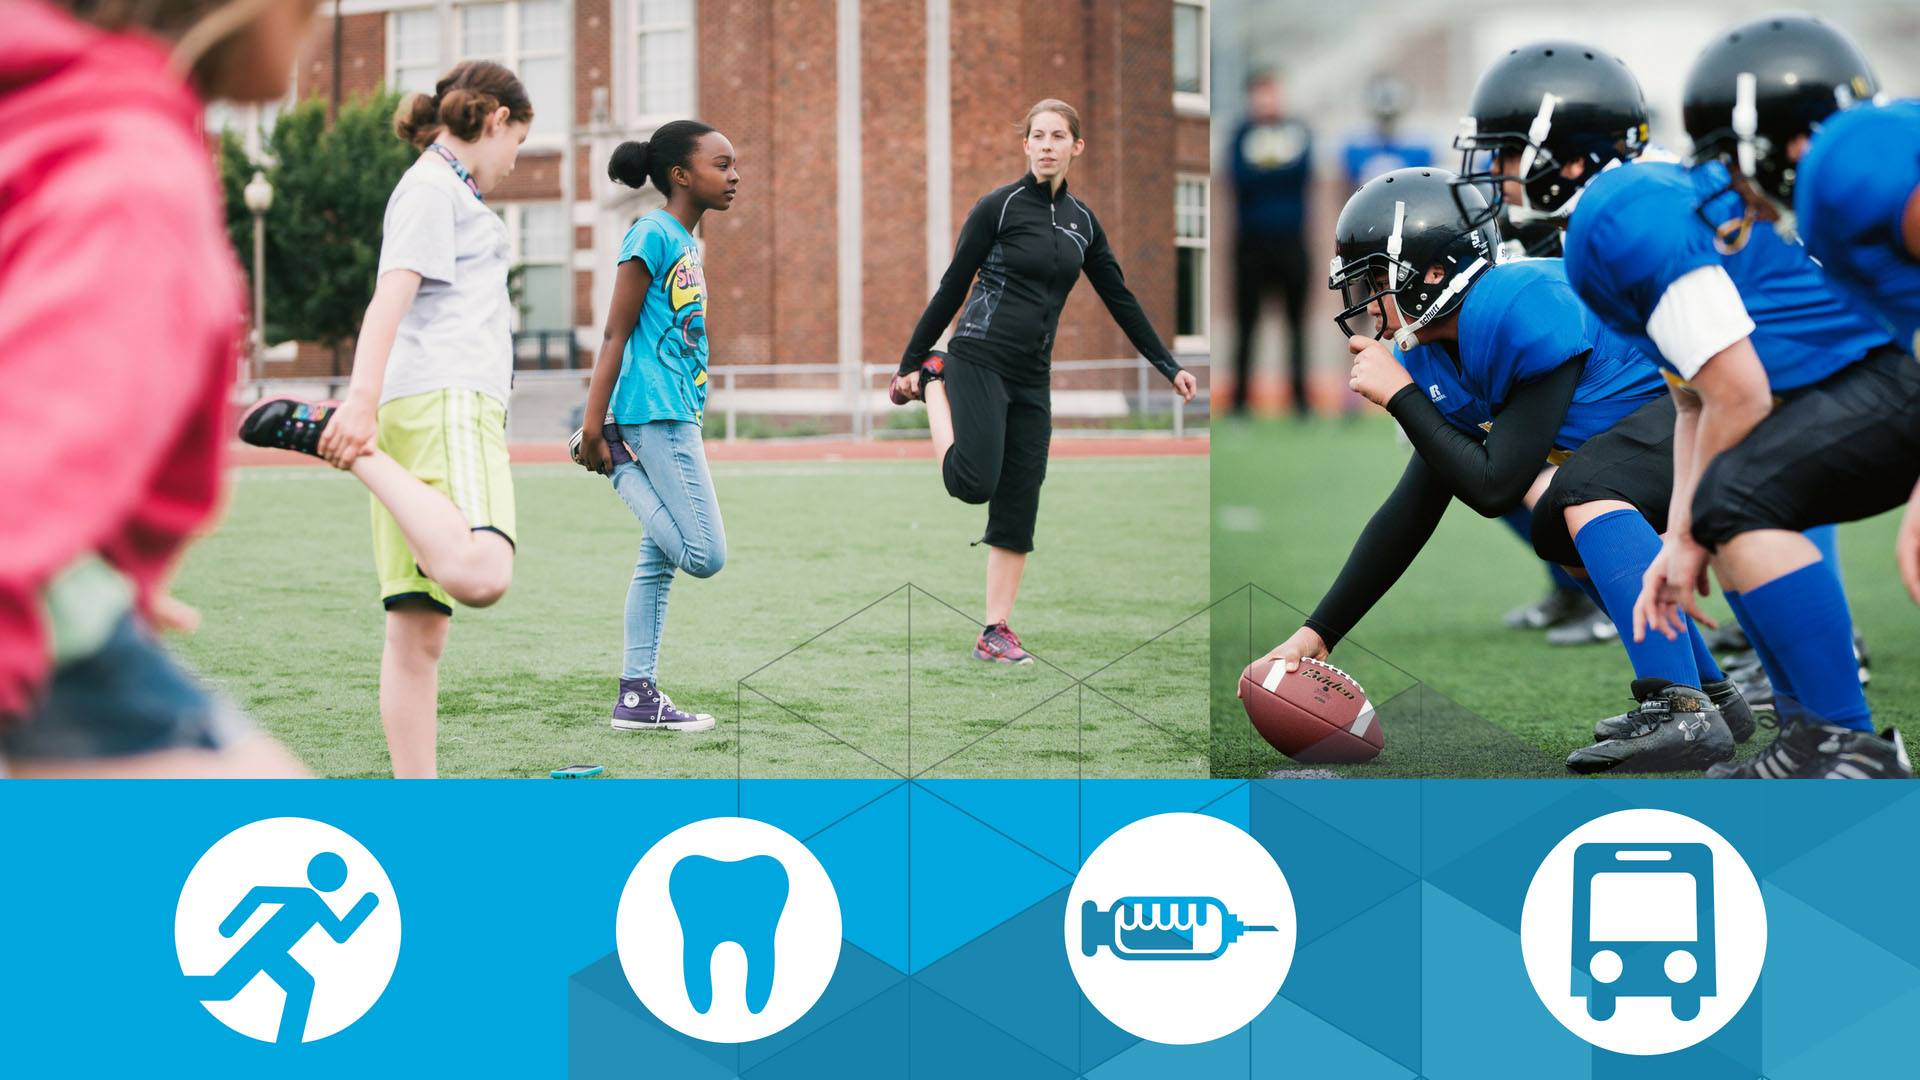 Free Sports Physical & Health Fair (2 Locations) - Greater